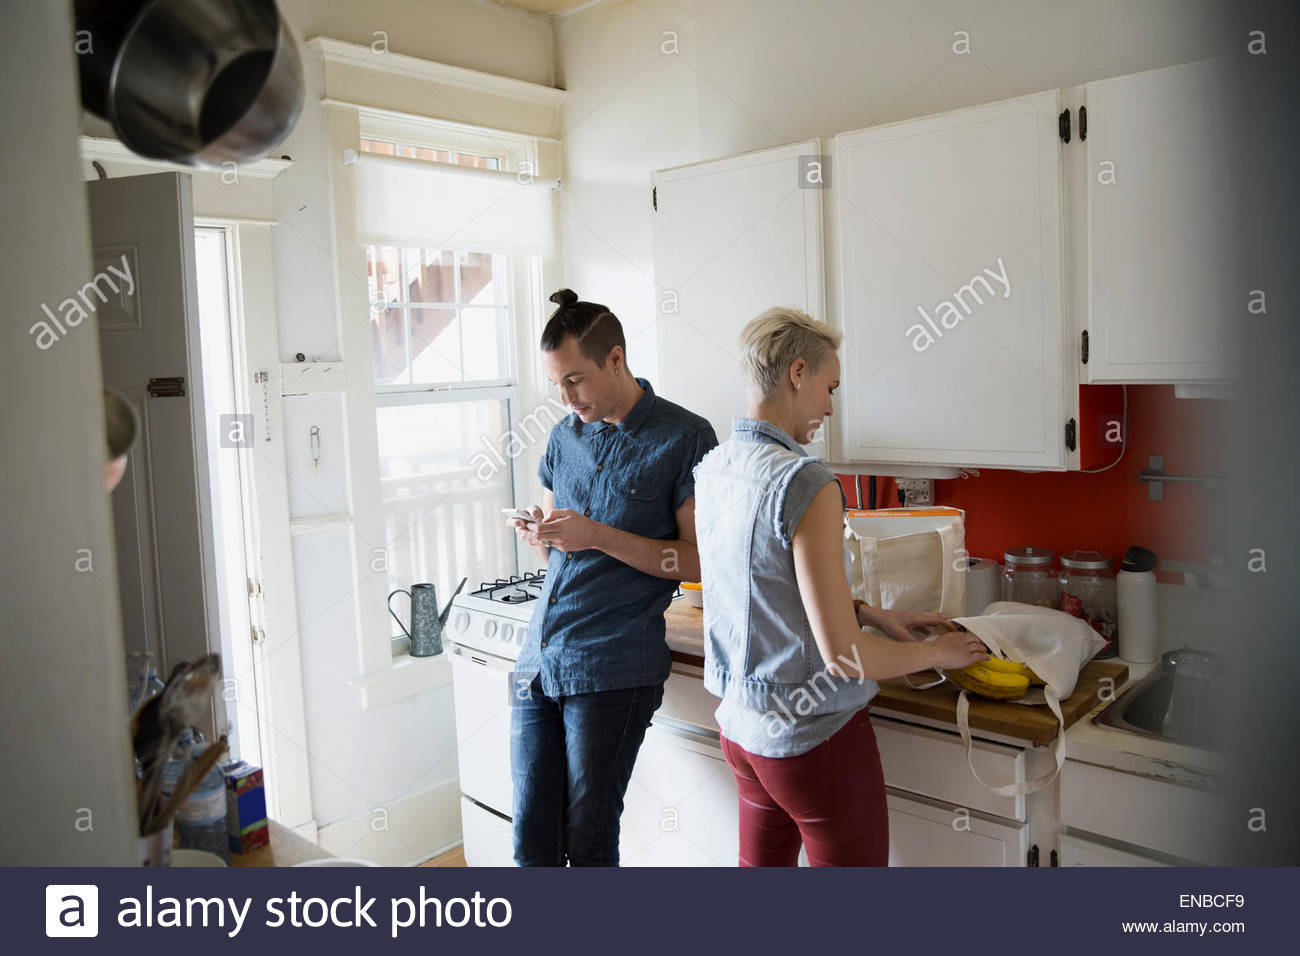 Couple cooking in kitchen - Stock Image